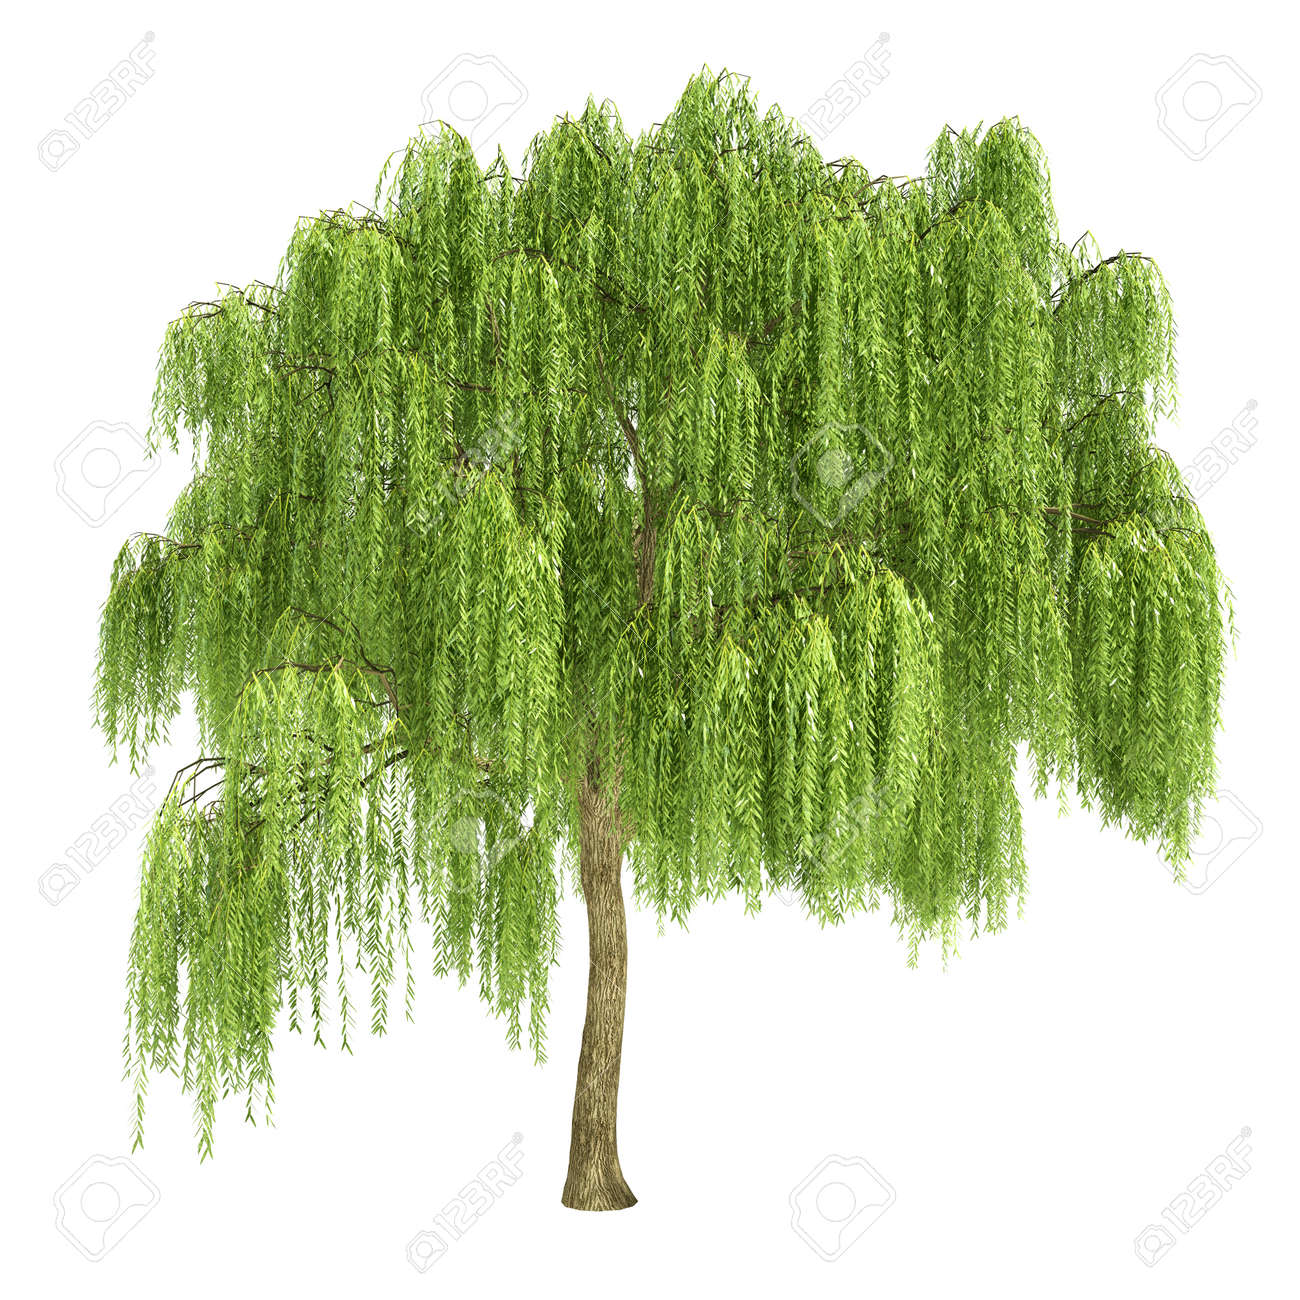 Willow Tree Stock Photos. Royalty Free Willow Tree Images